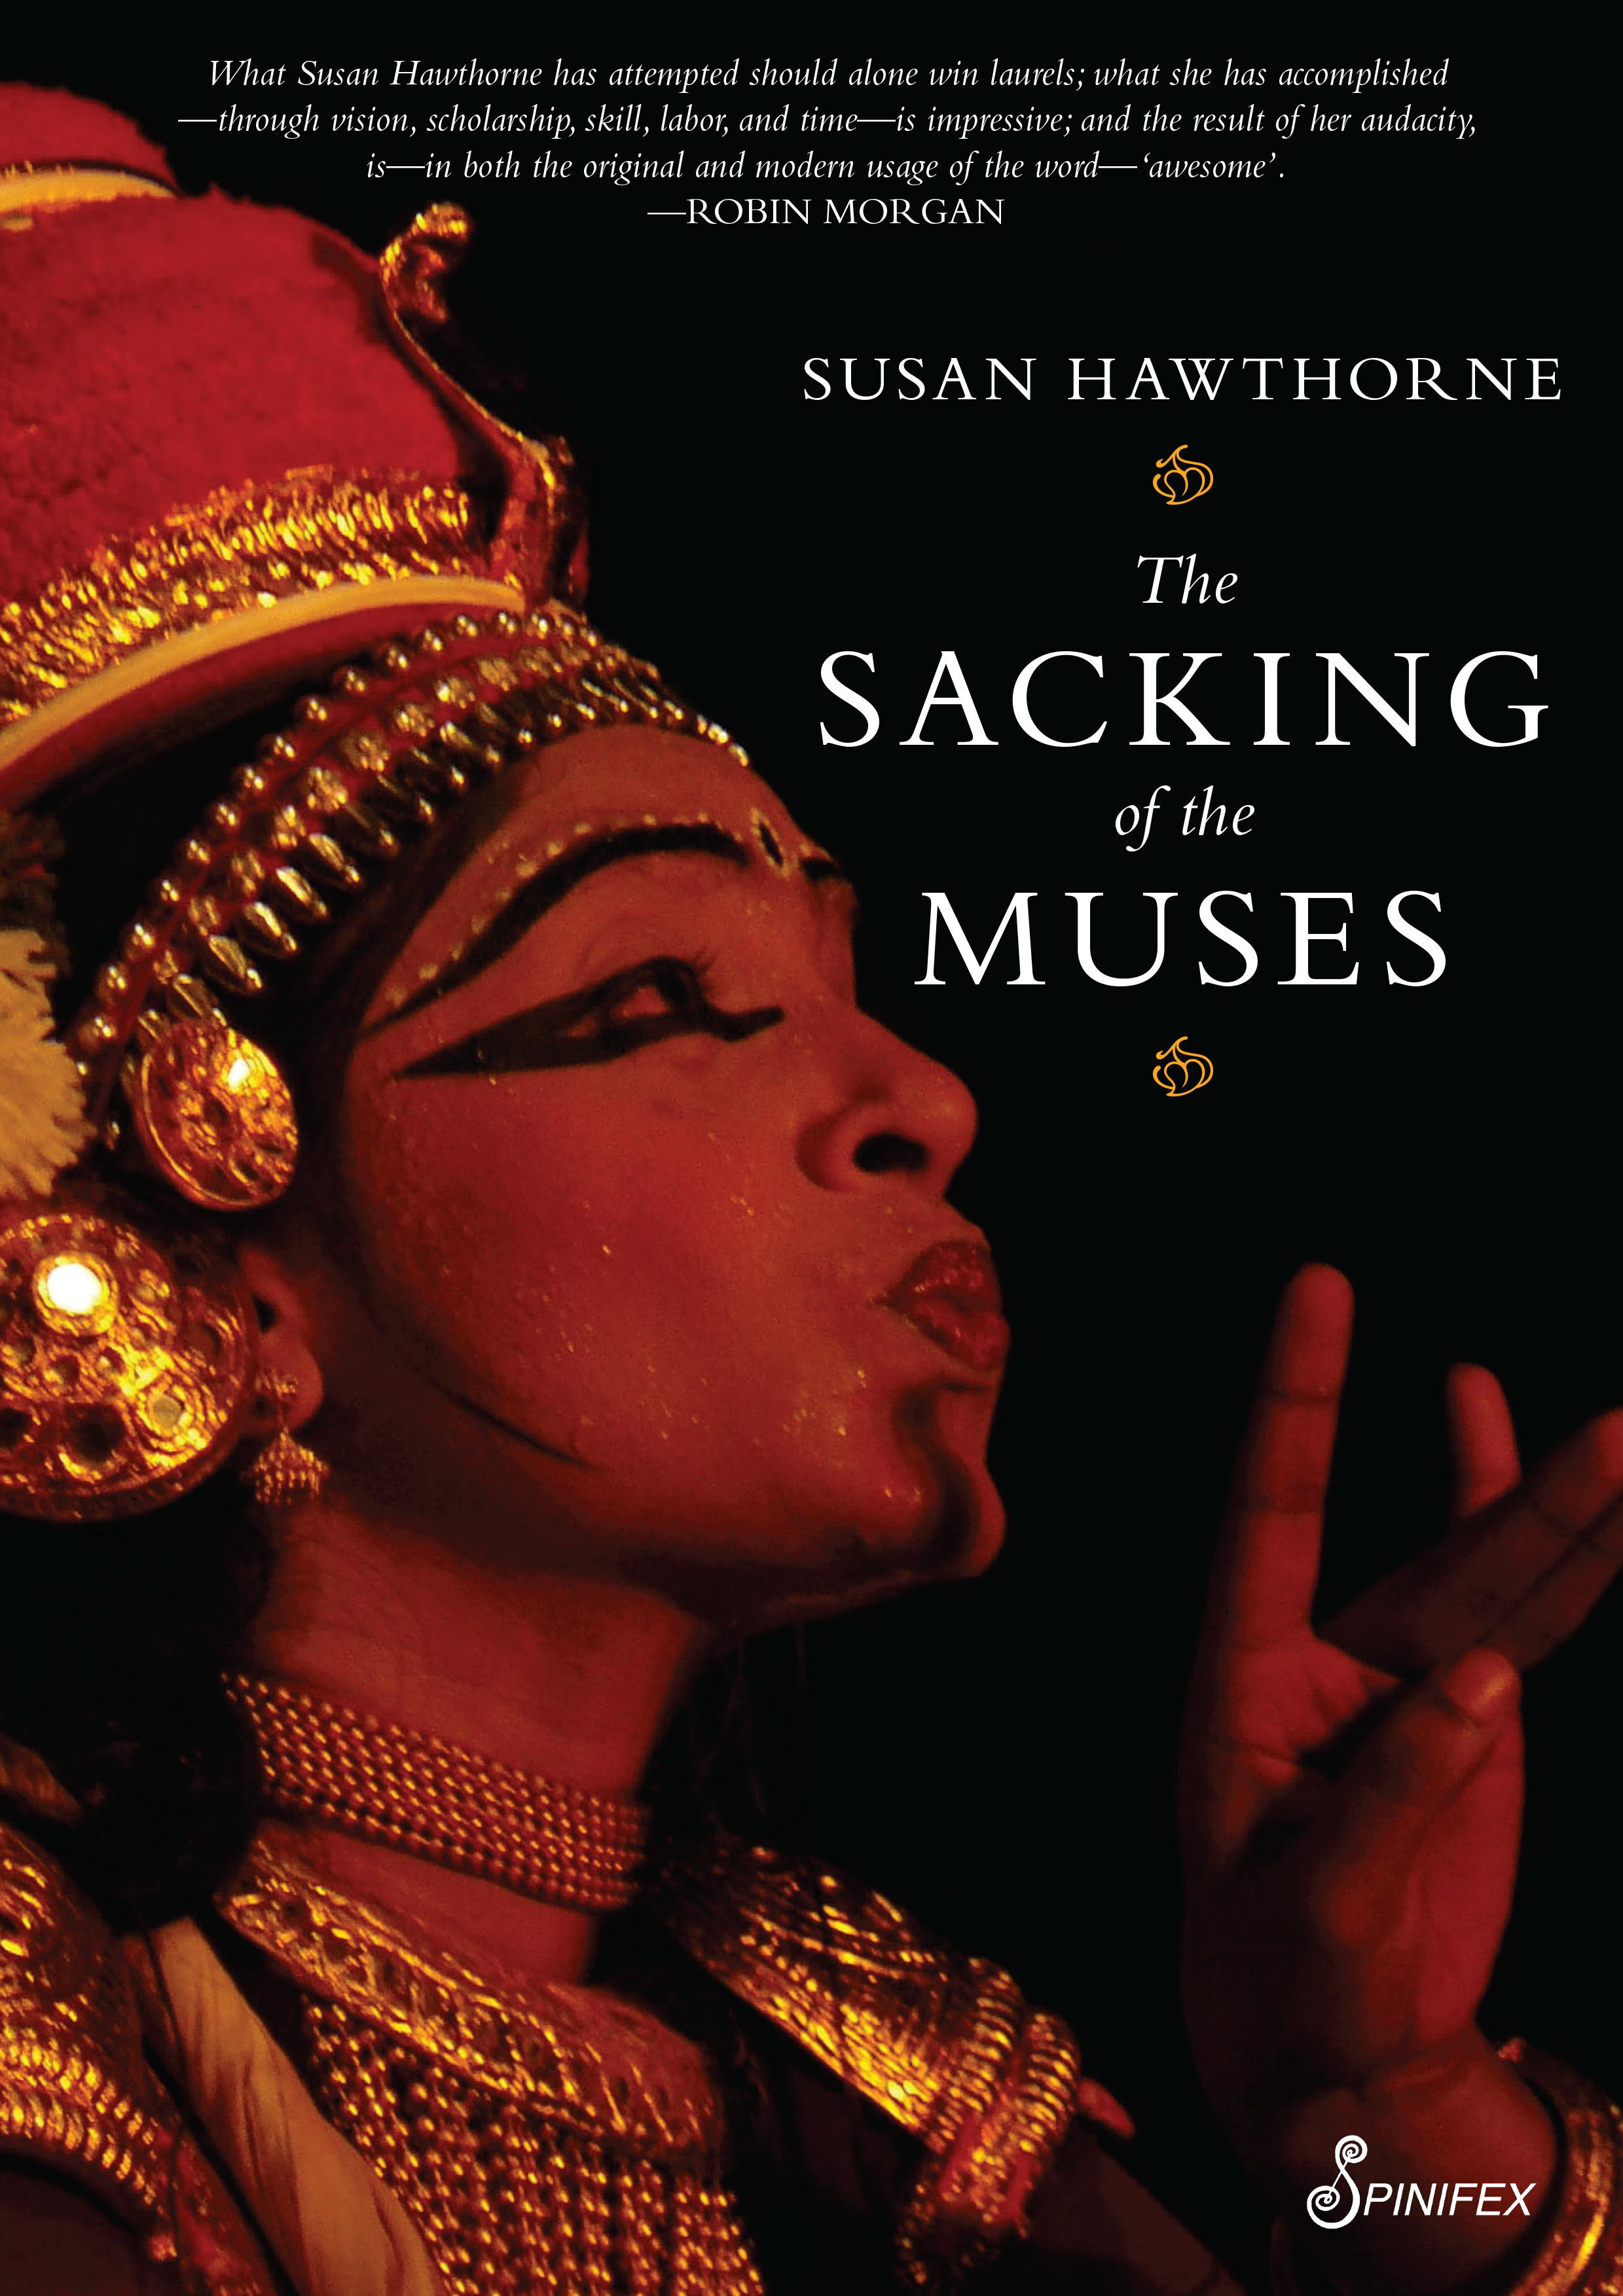 The Sacking of the Muses